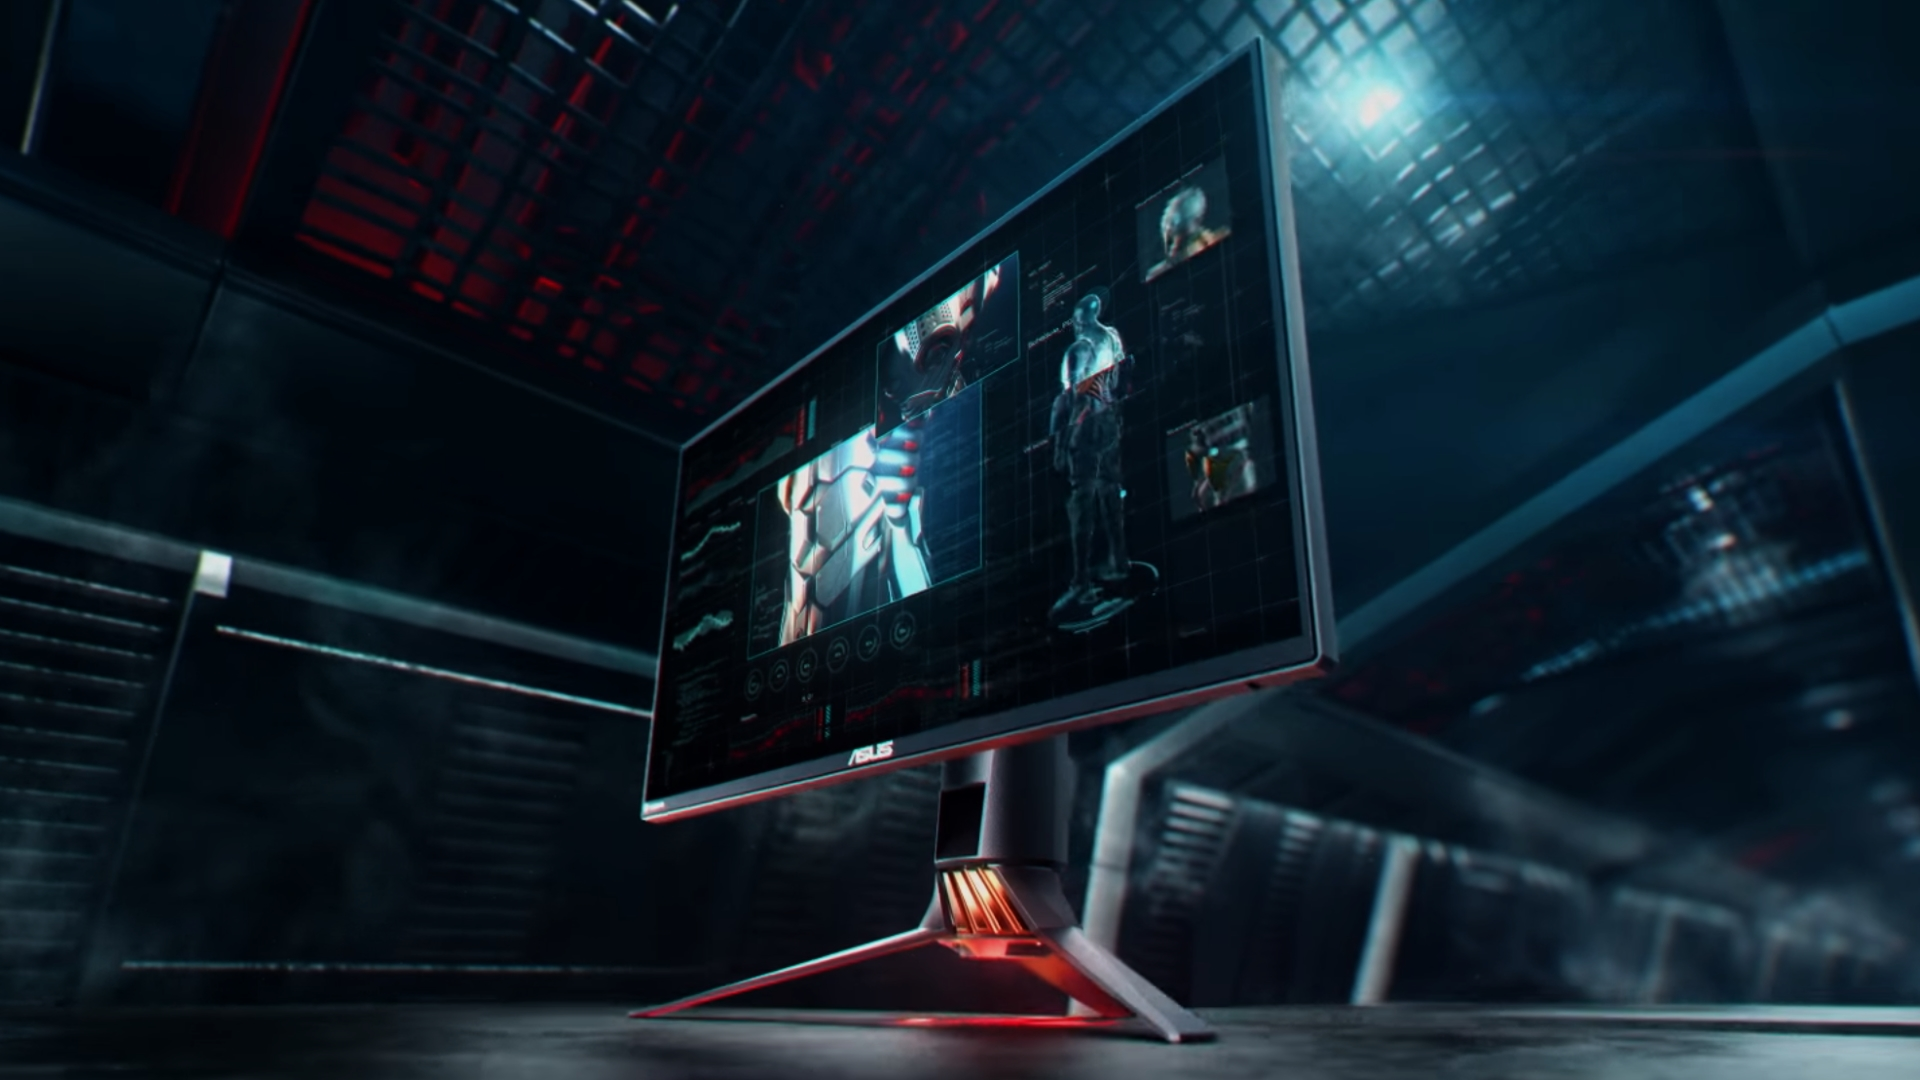 Best Ultrawide Gaming Monitor 2020 Best gaming monitor 2019 (July) | PCGamesN